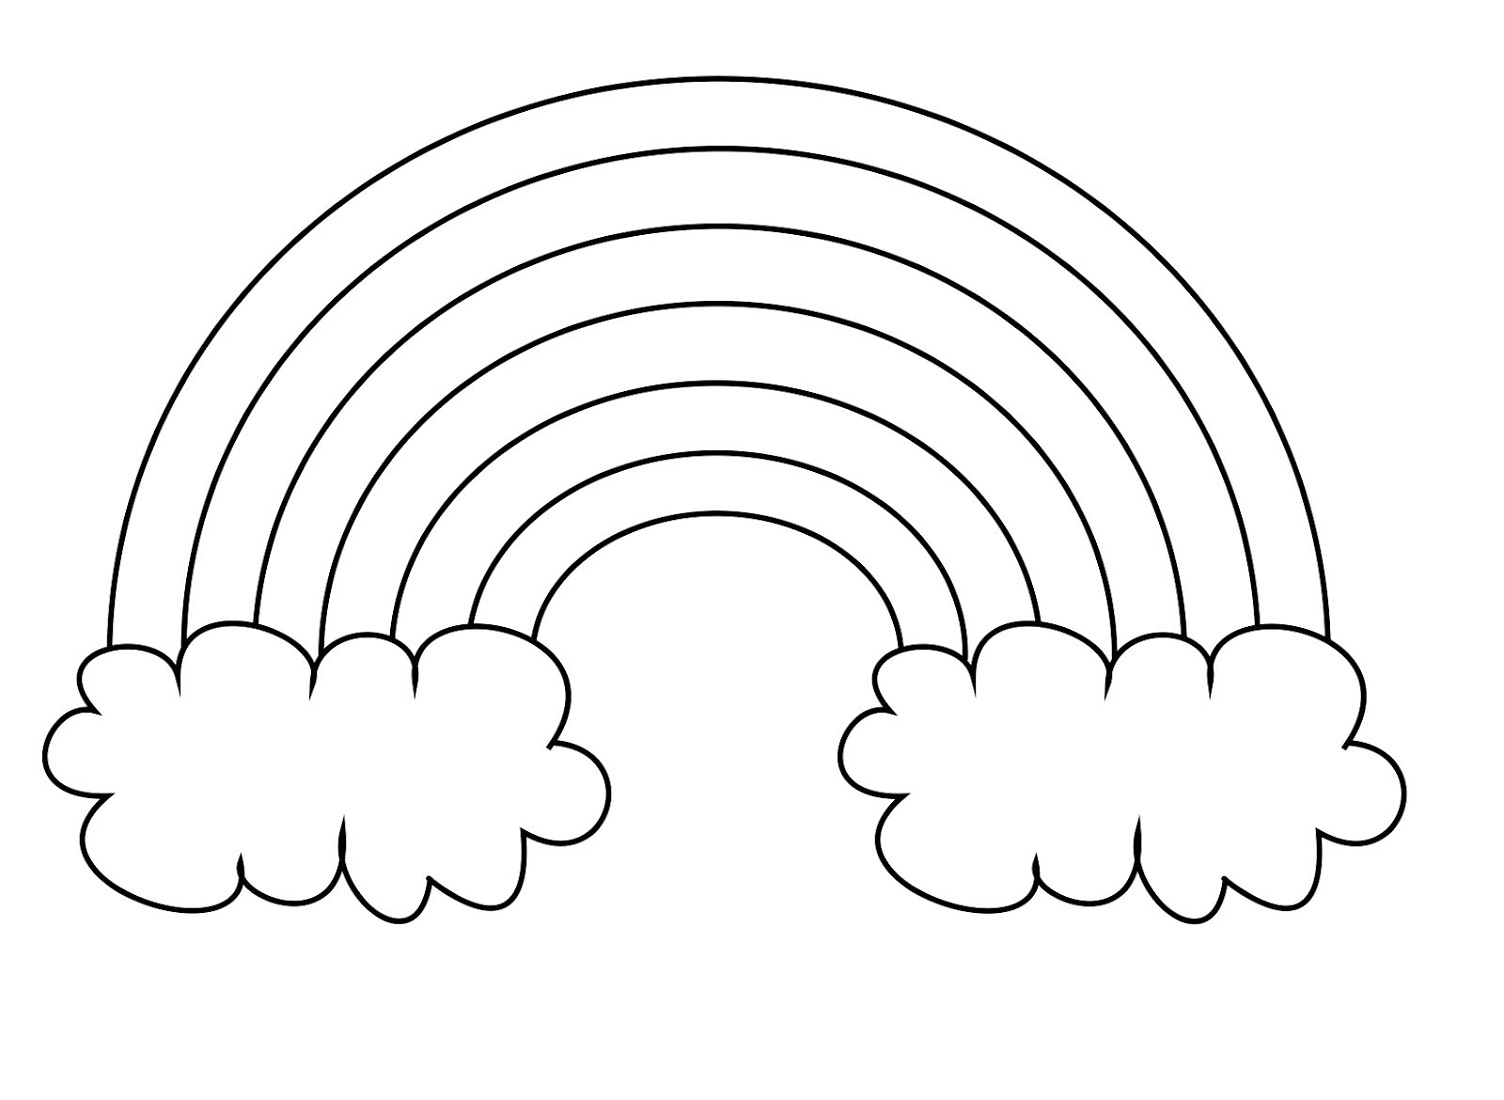 Coloring Pages For Kids To Print Rainbow